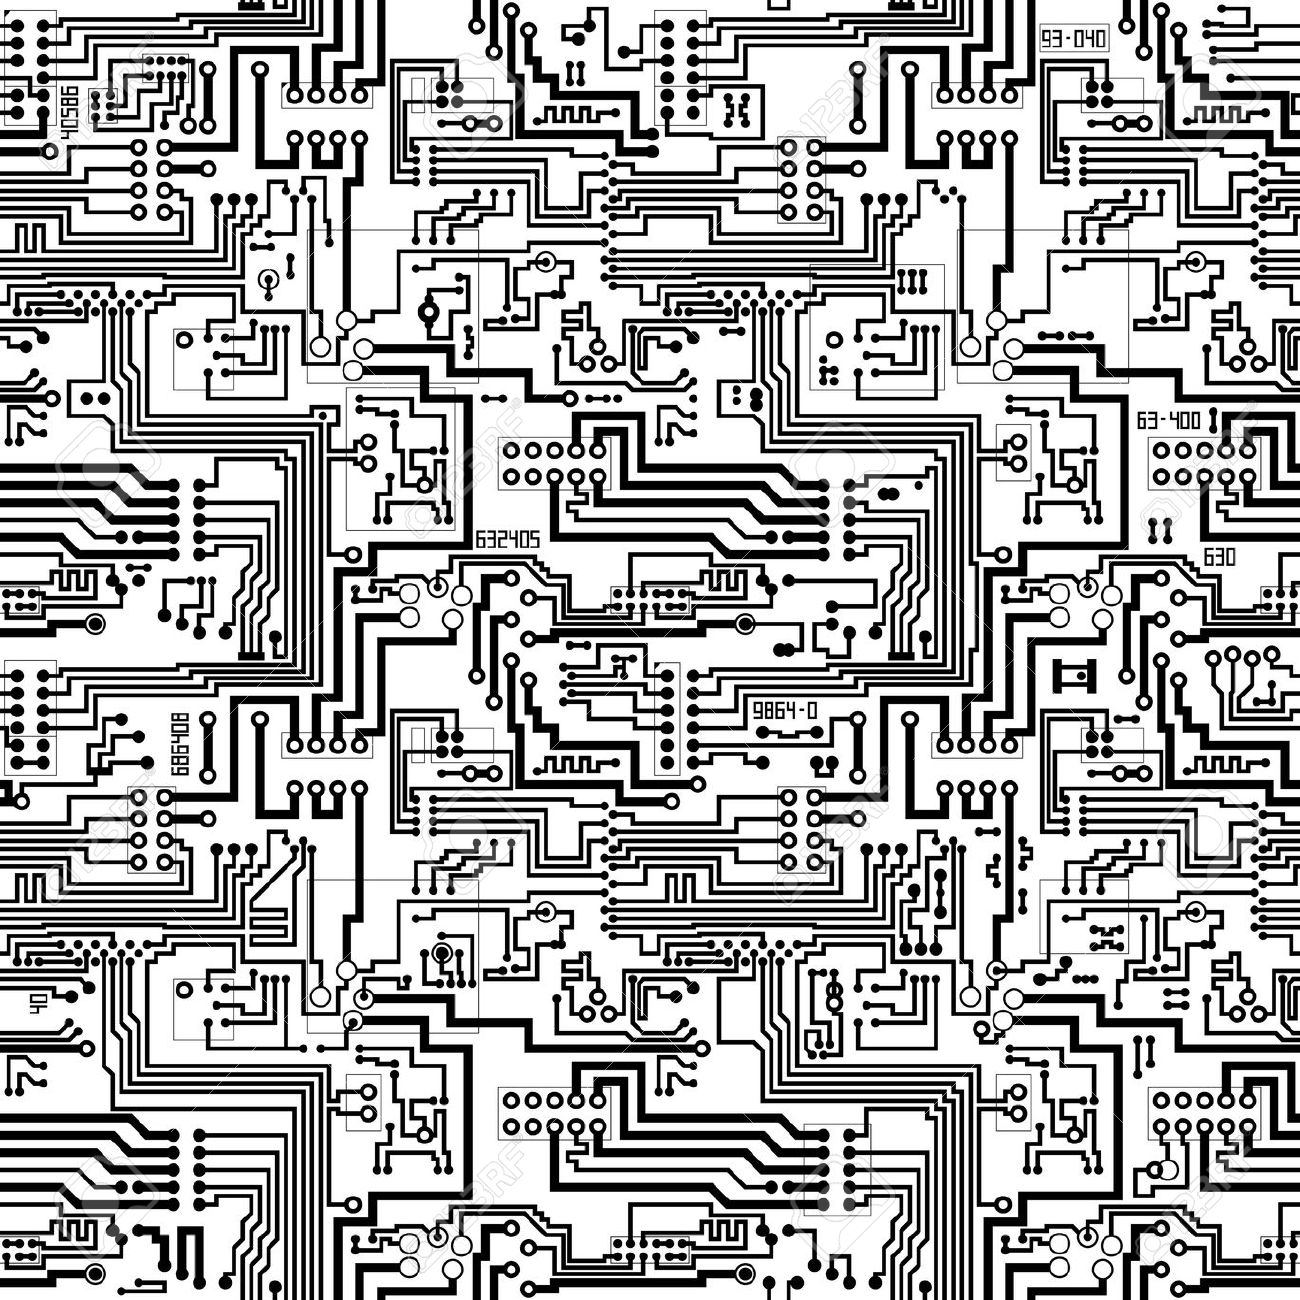 Motherboard drawing at getdrawings free for personal use